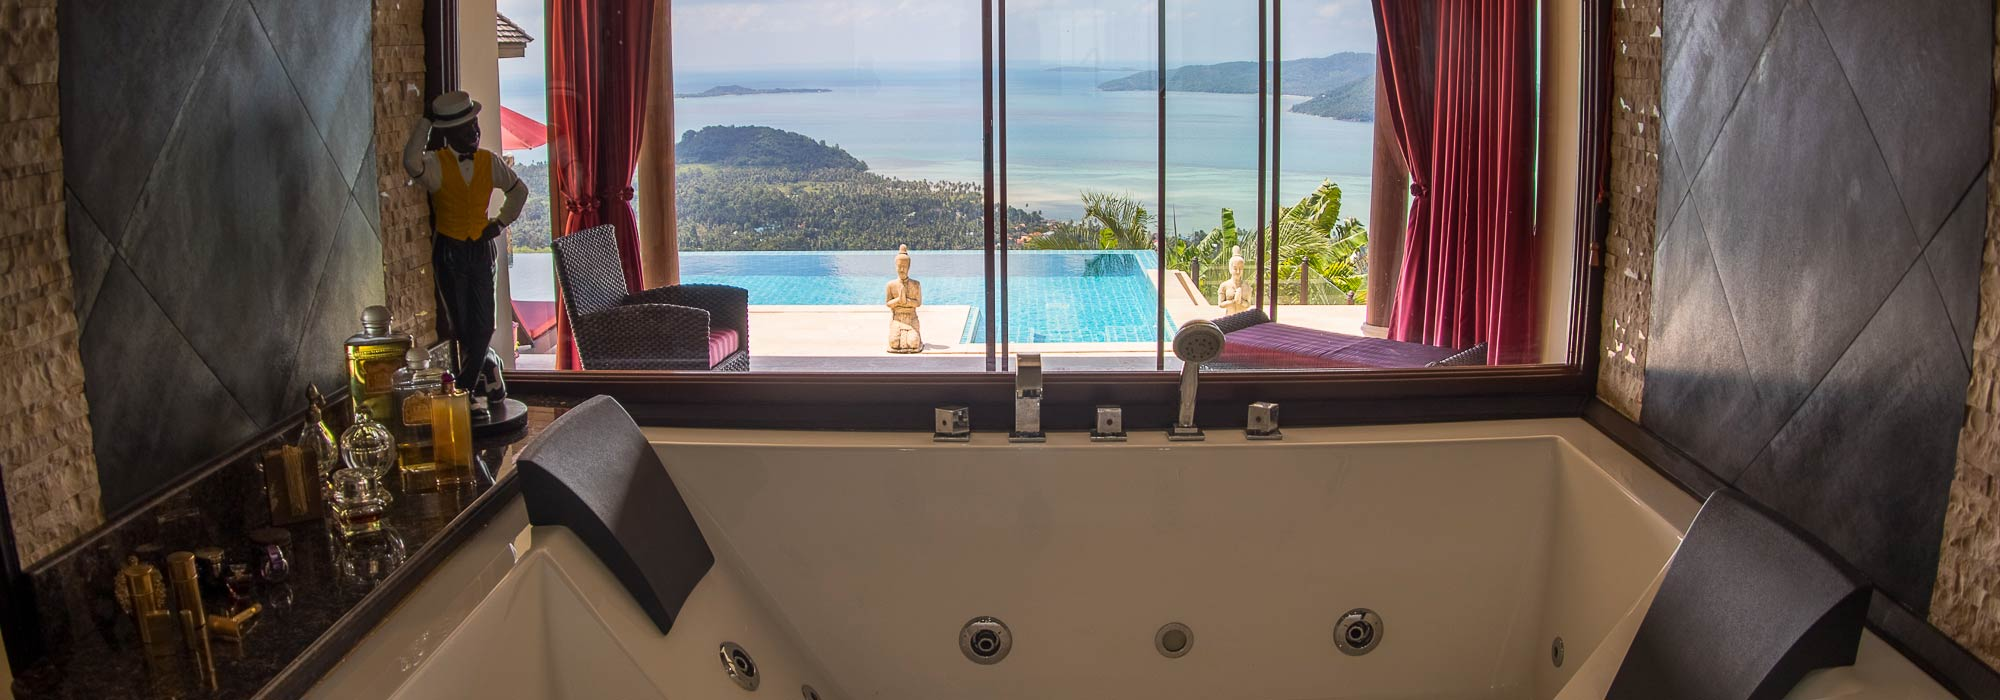 Villa Disa – Incredible Sea View, South of Samui